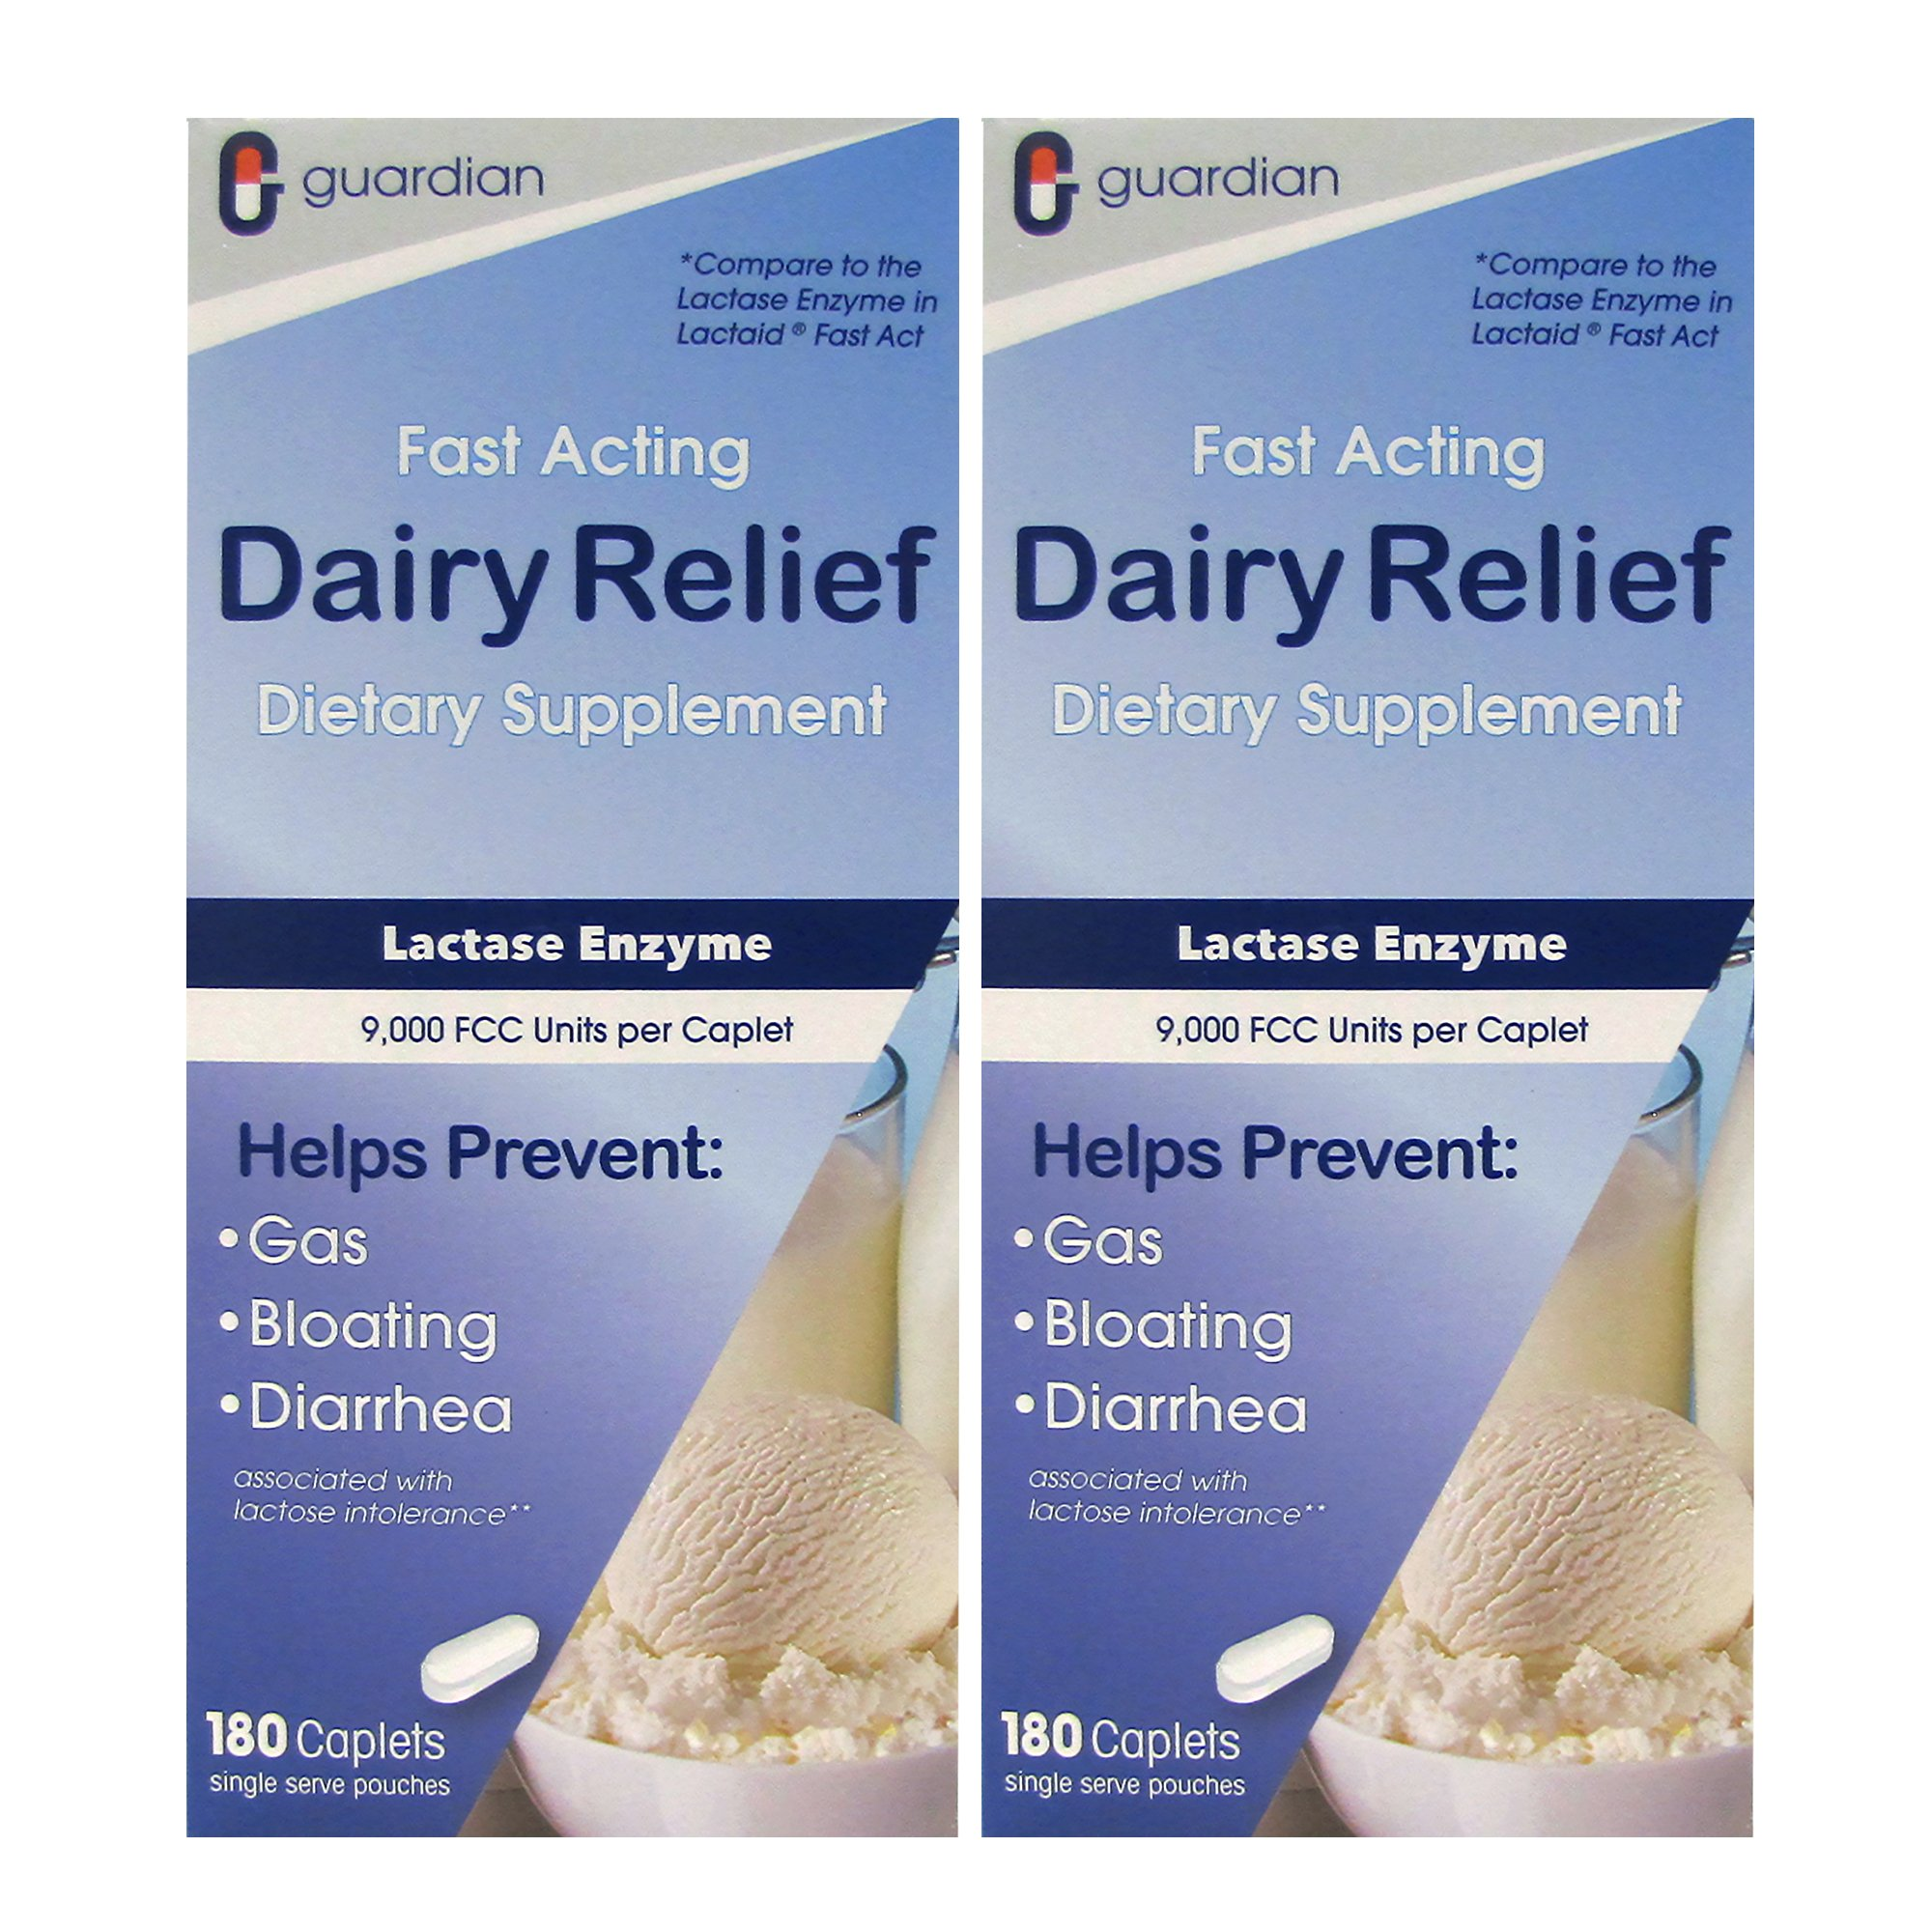 Guardian Dairy Relief Fast Acting 360 Caplets, 9000 FCC Maximum Strength, Lactose Intolerance Pills, Lactase Enzyme Supplement (360 CT) by Guardian (Image #1)